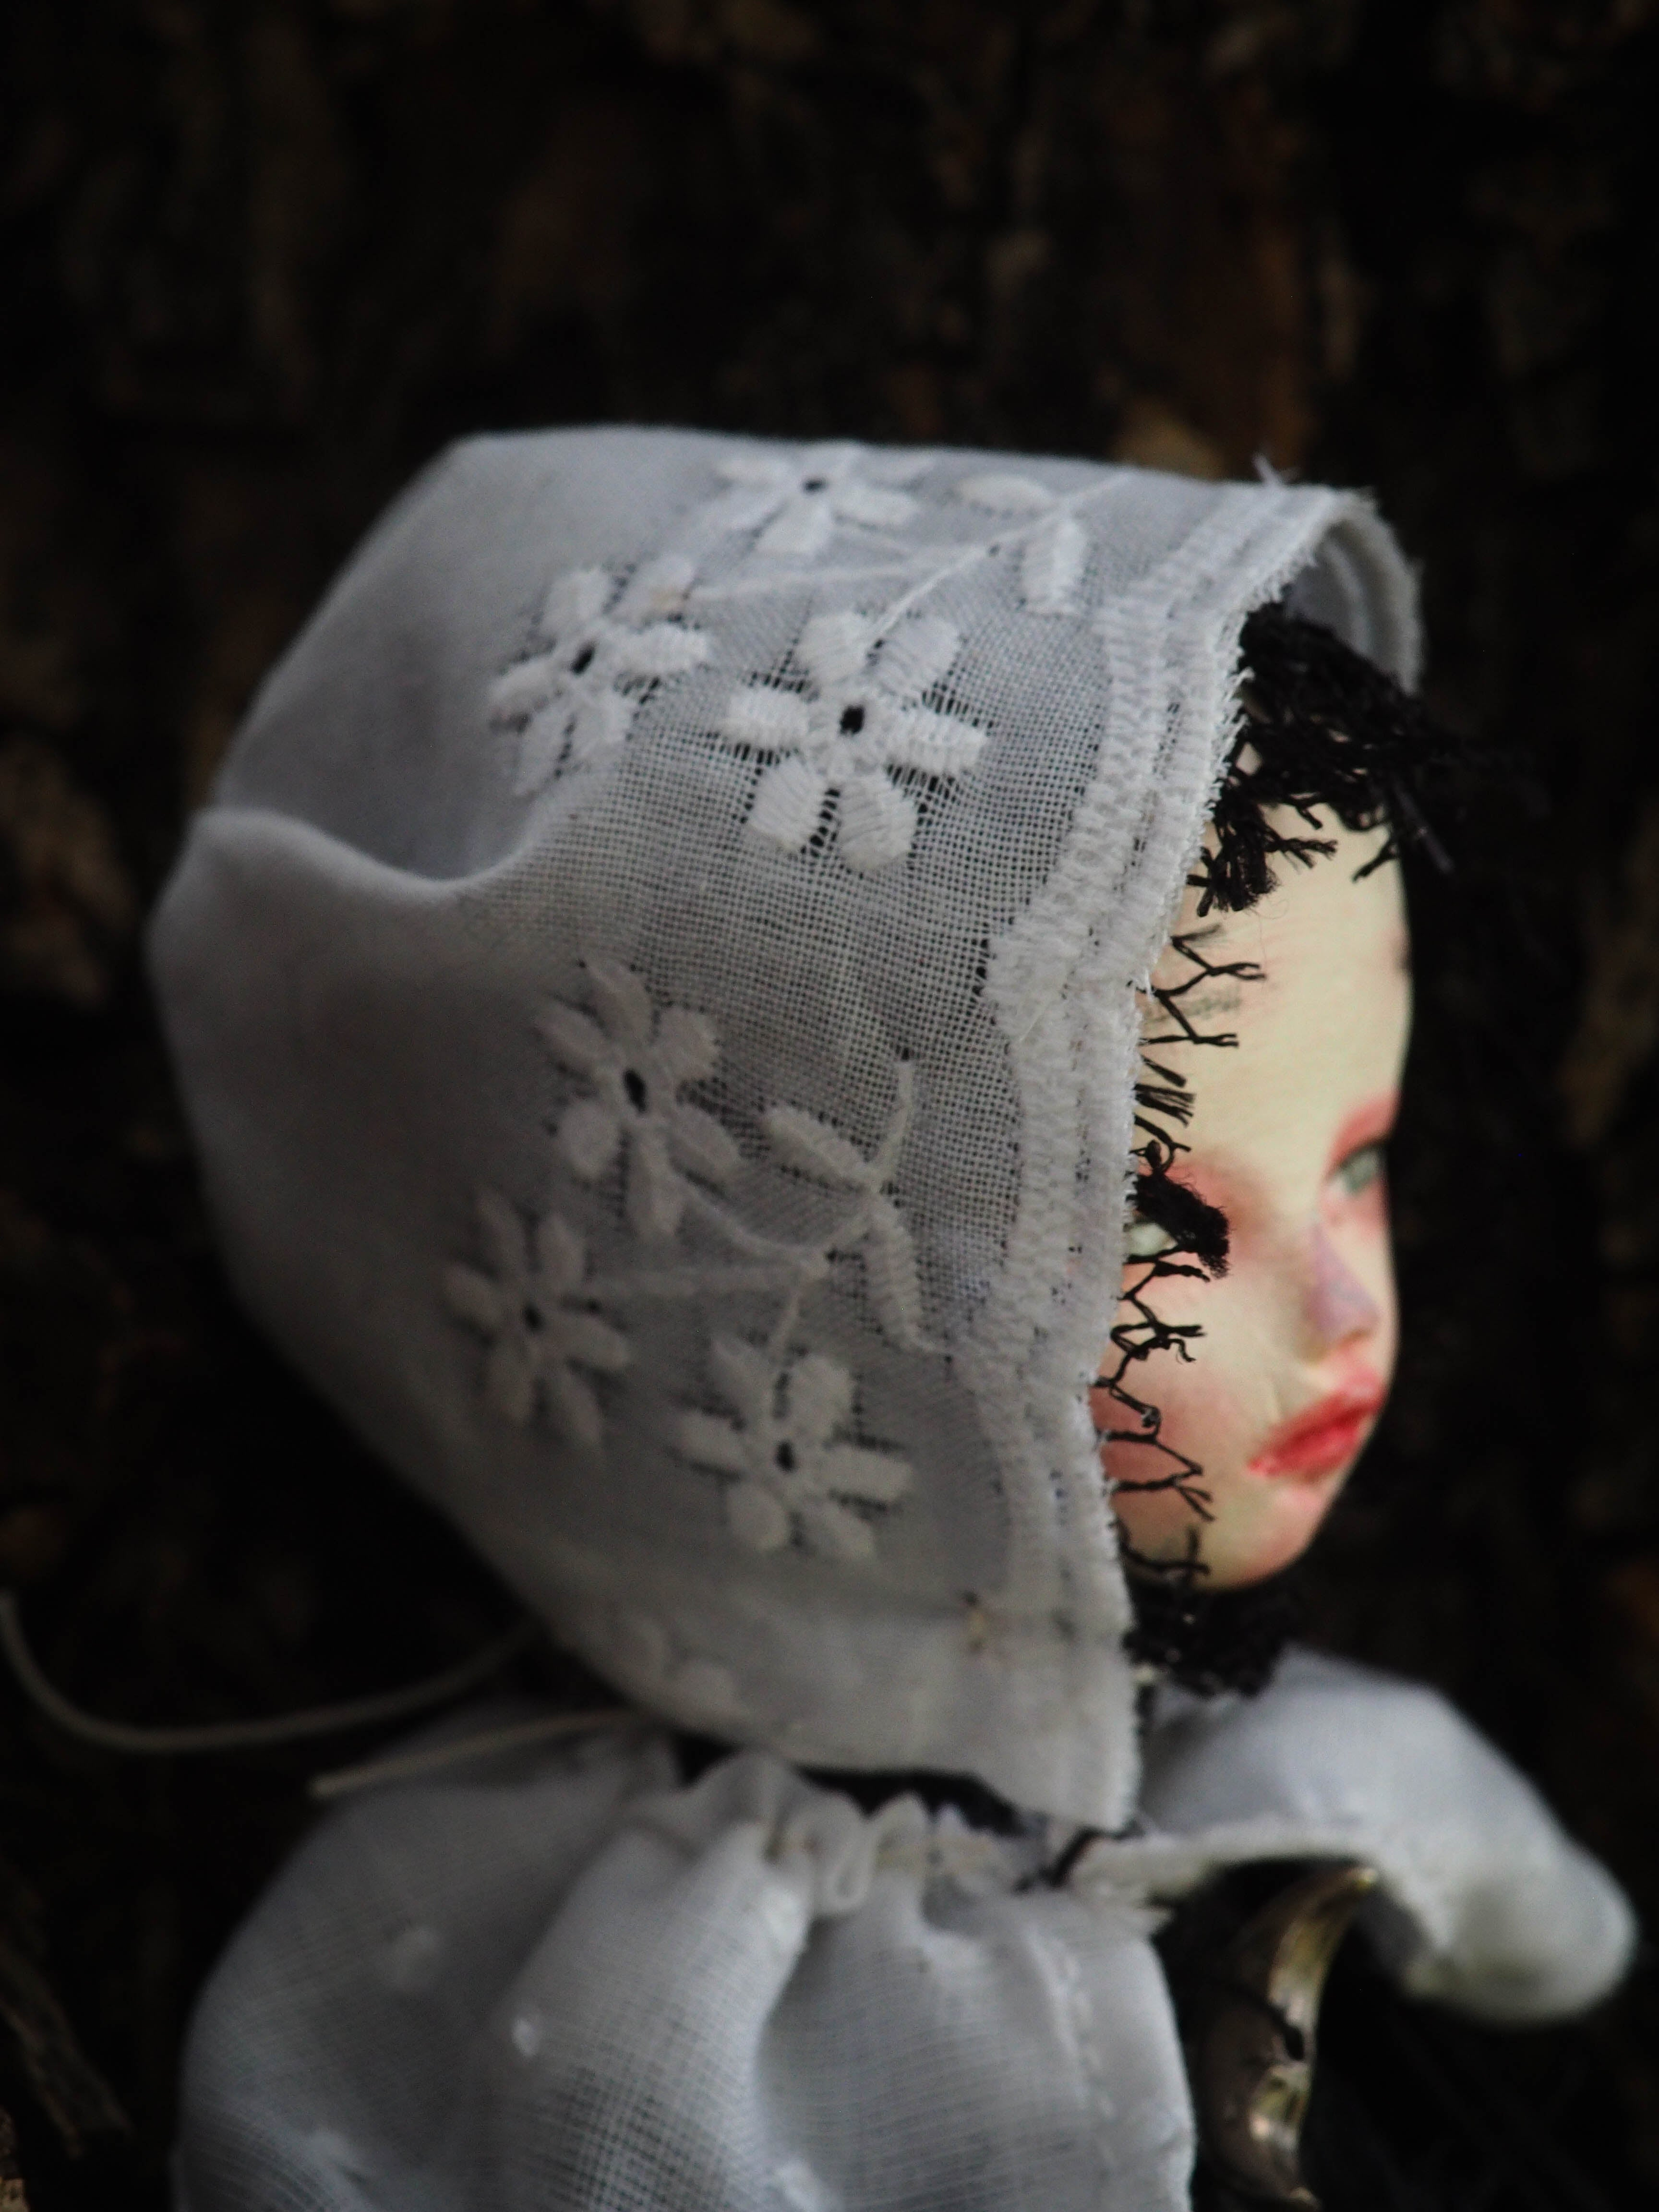 THE WITCH OF SALEM - An original handmade Halloween original art doll by Danita Art